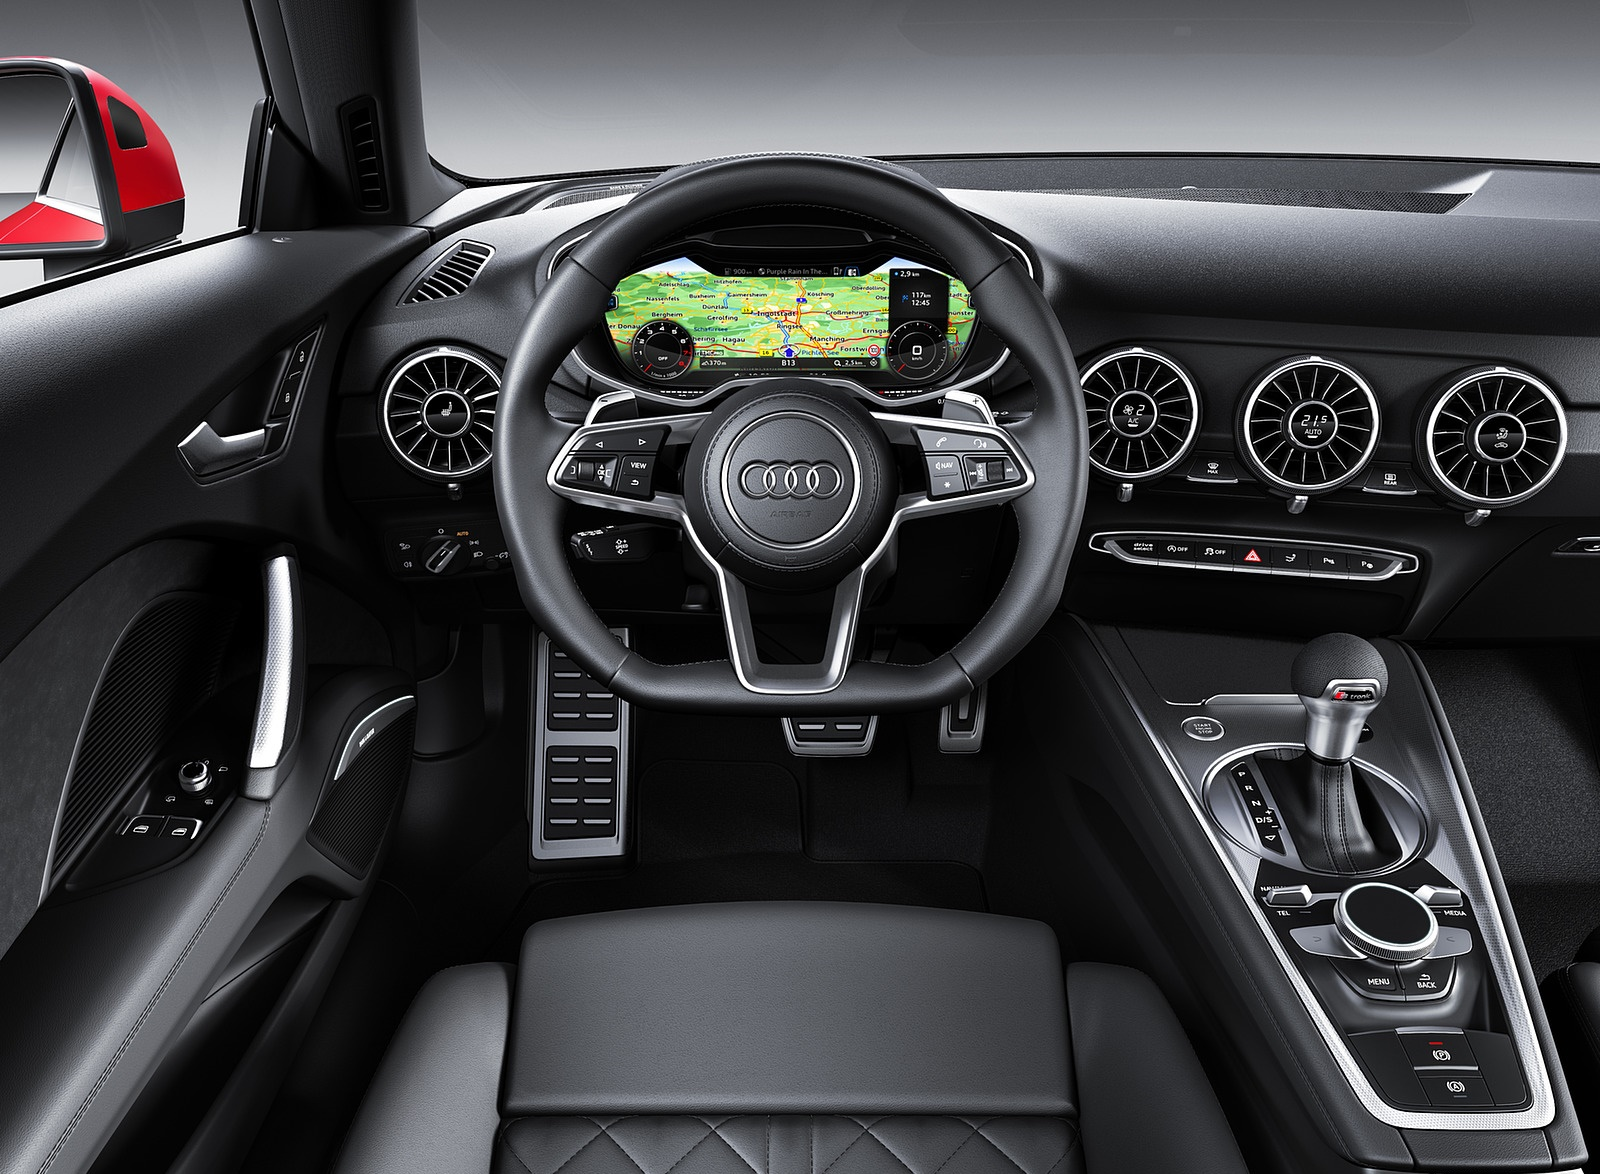 2019 Audi TT Interior Cockpit Wallpaper (13)